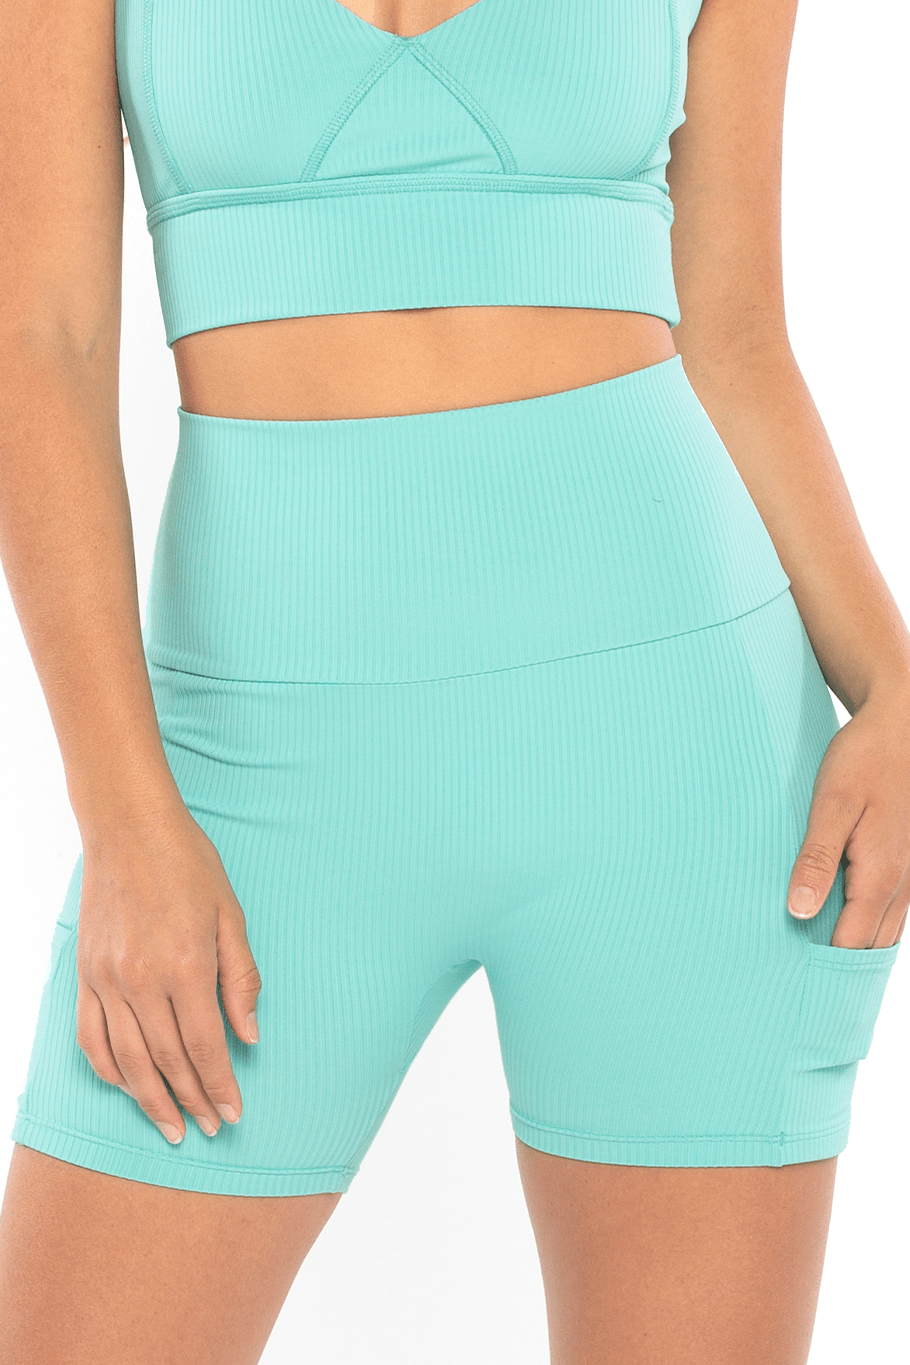 Shore Movement Bike Shorts - Seaglass Rib